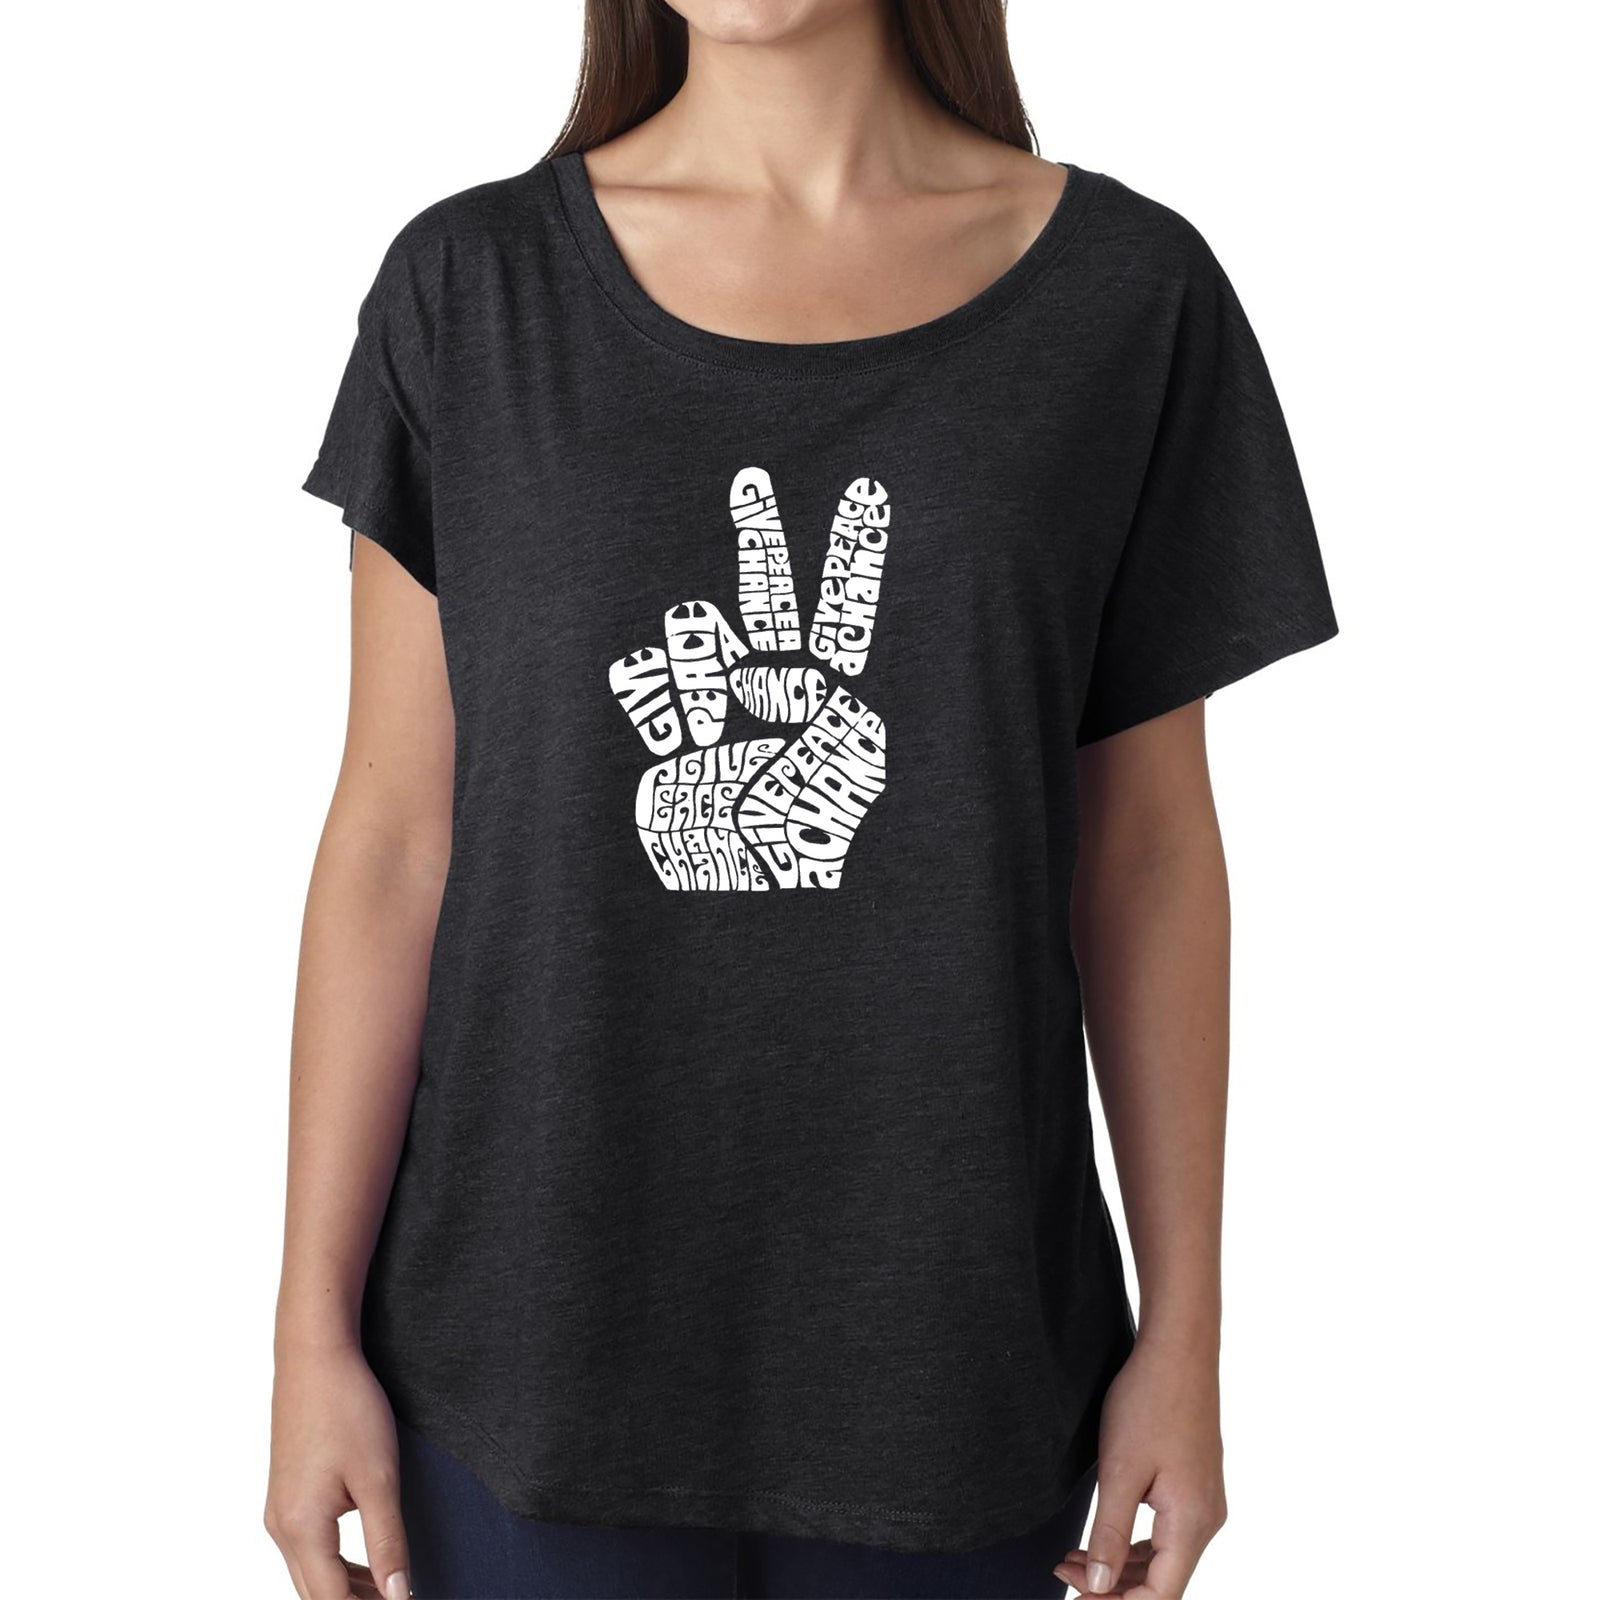 Women's Loose Fit Dolman Cut Word Art Shirt - PEACE FINGERS